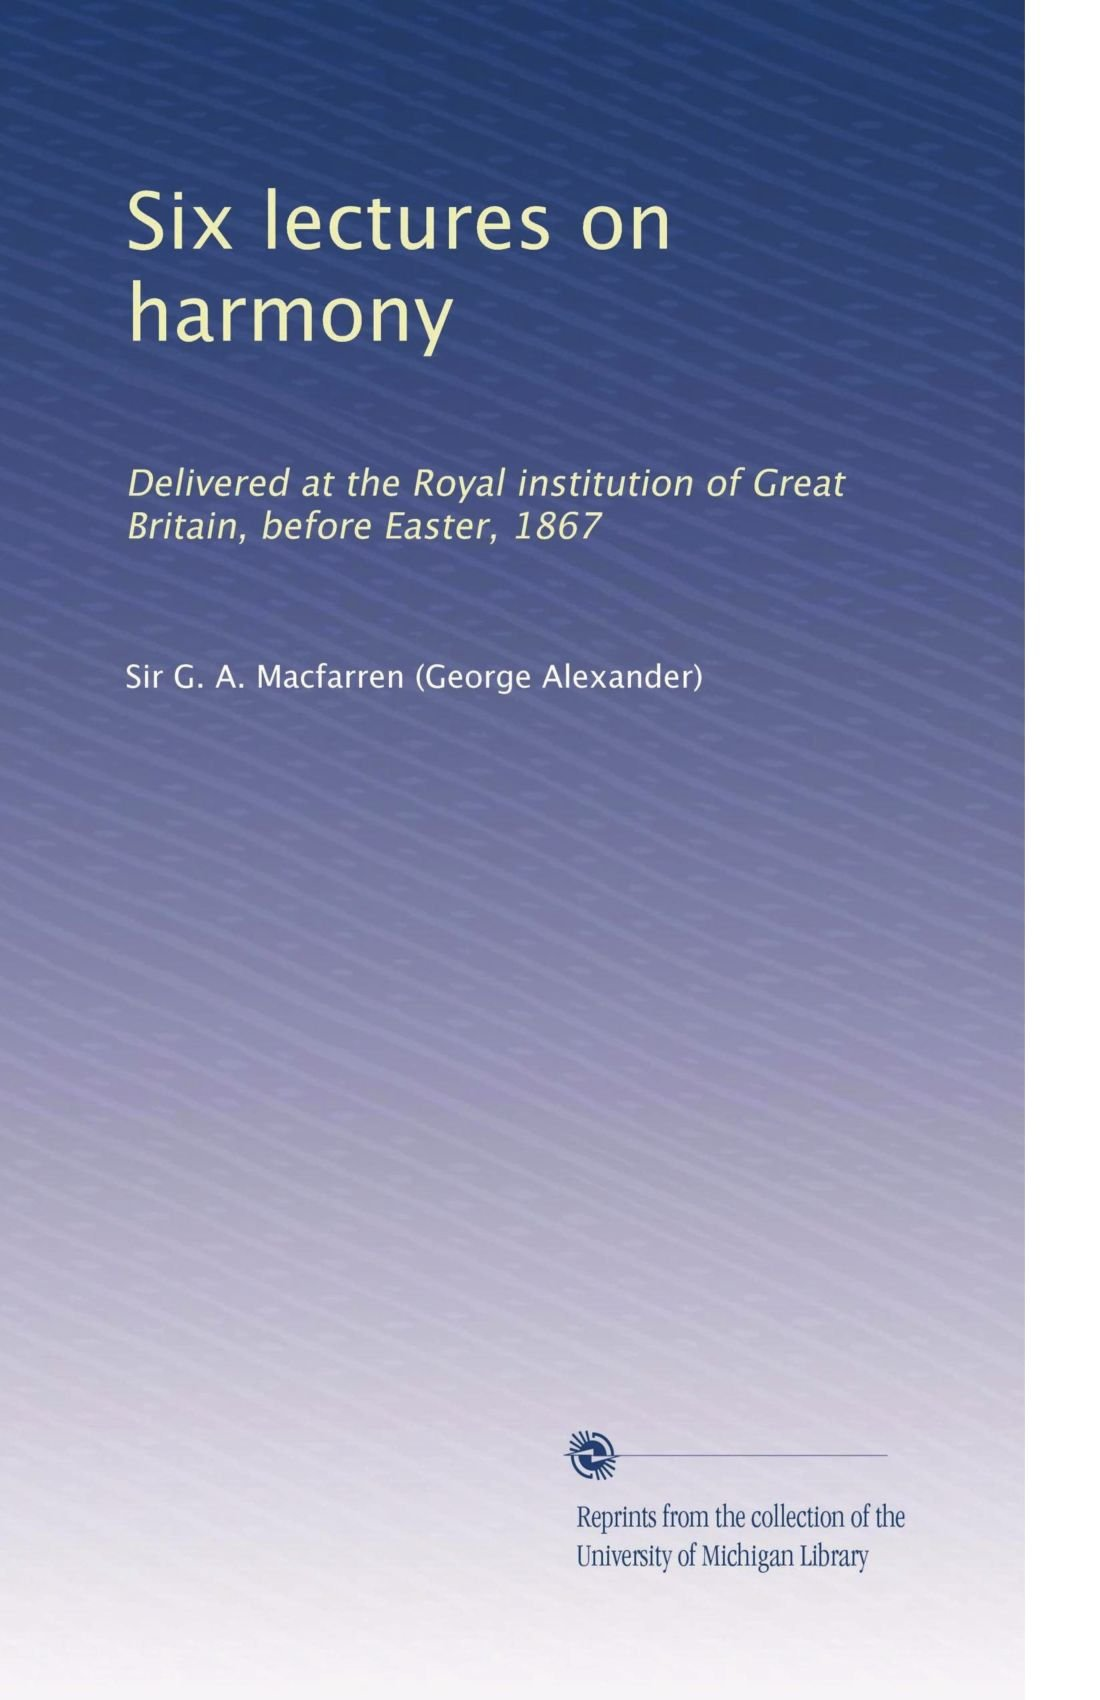 Download Six lectures on harmony: Delivered at the Royal institution of Great Britain, before Easter, 1867 pdf epub